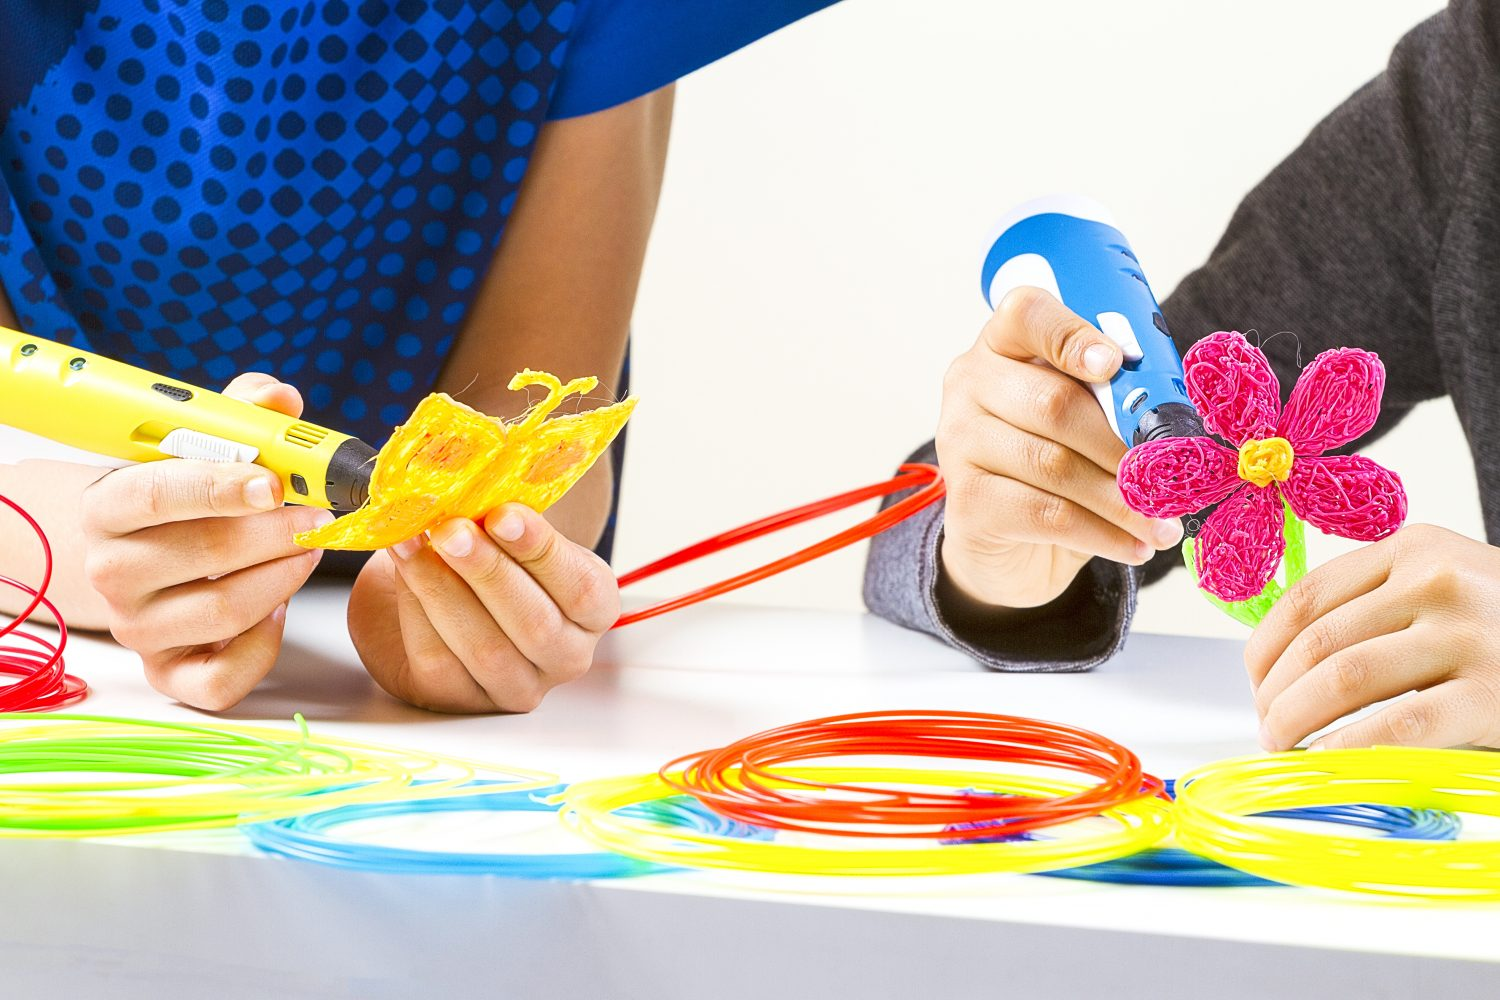 Create Art with 3D Pens